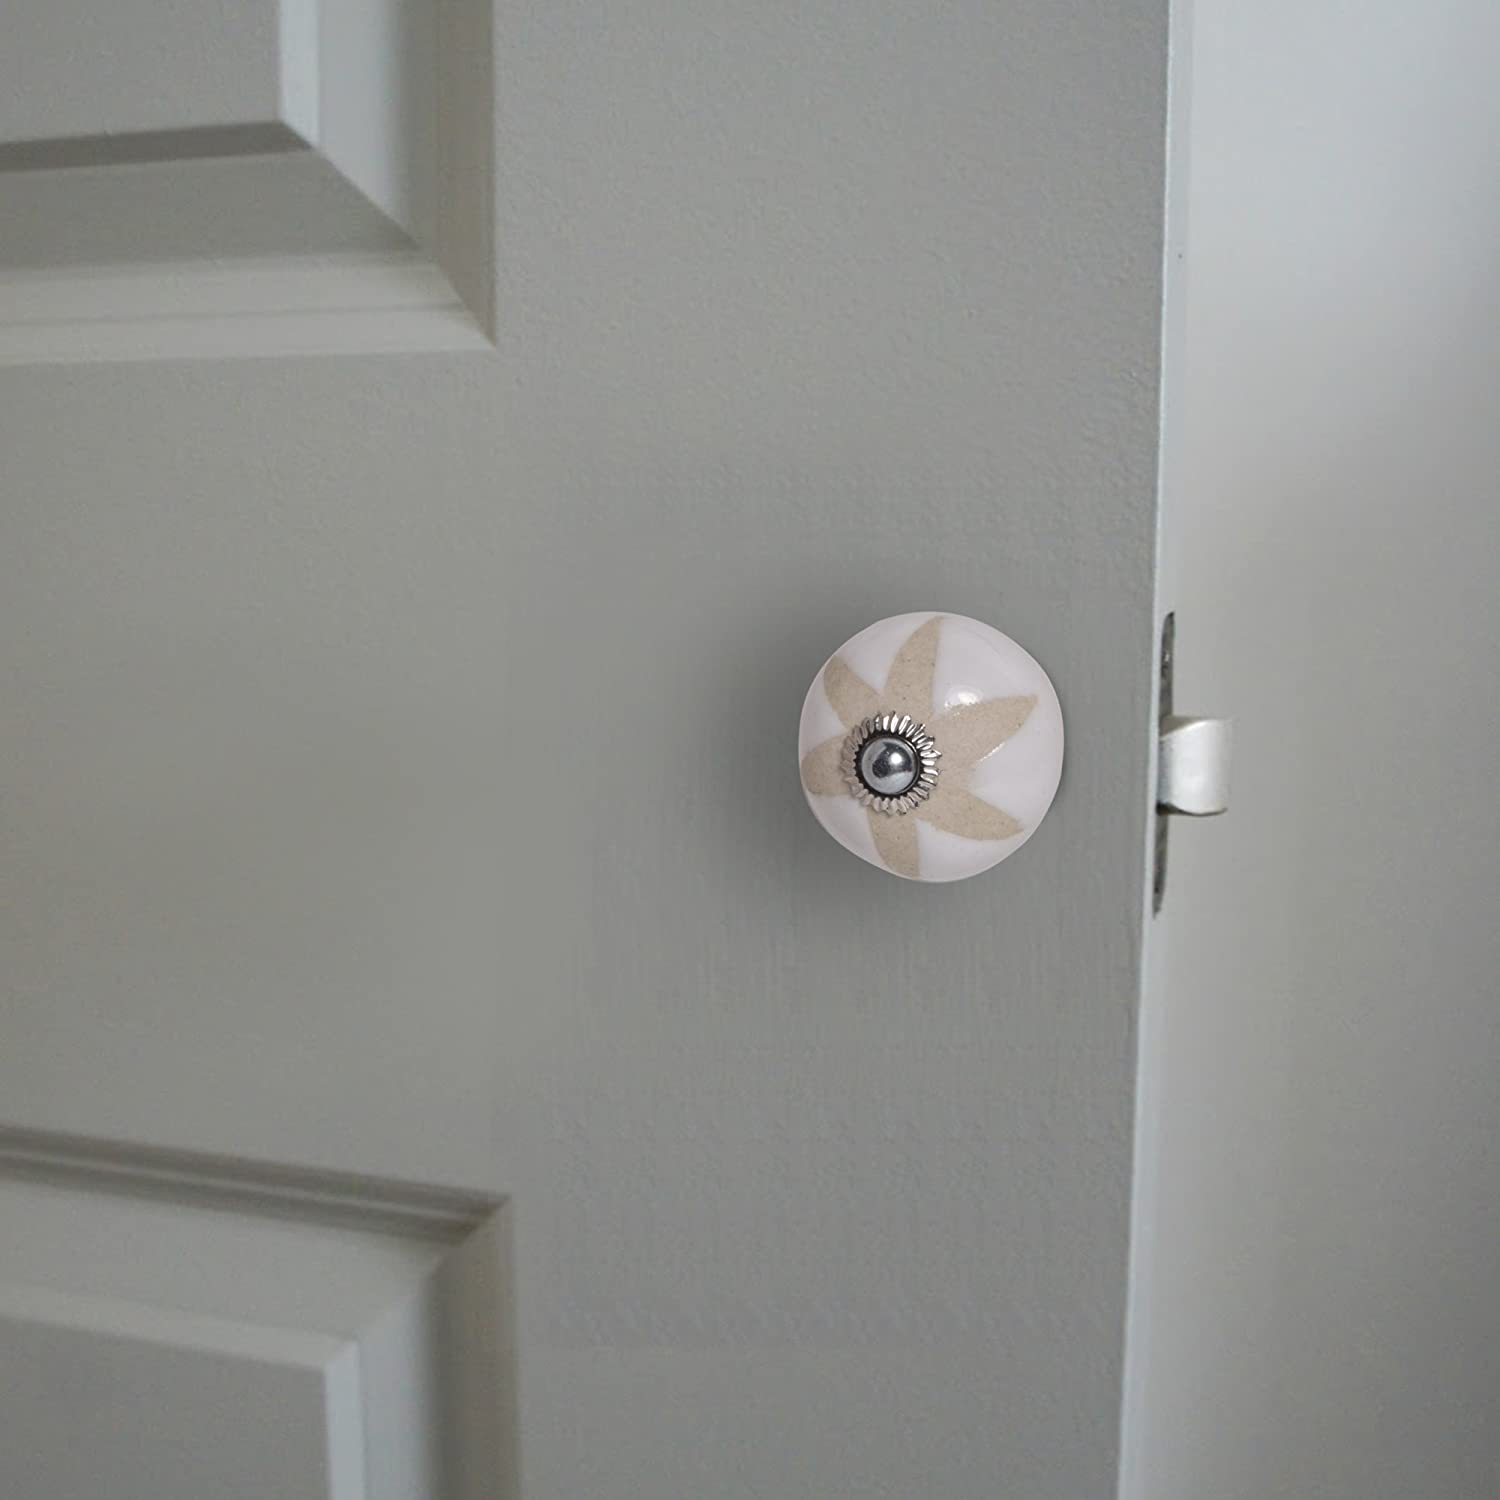 4x2.25x2.25 KNOBS CARTs White Abstract Casual Ceramic Door Knob Pack of 10 White Colored Knob